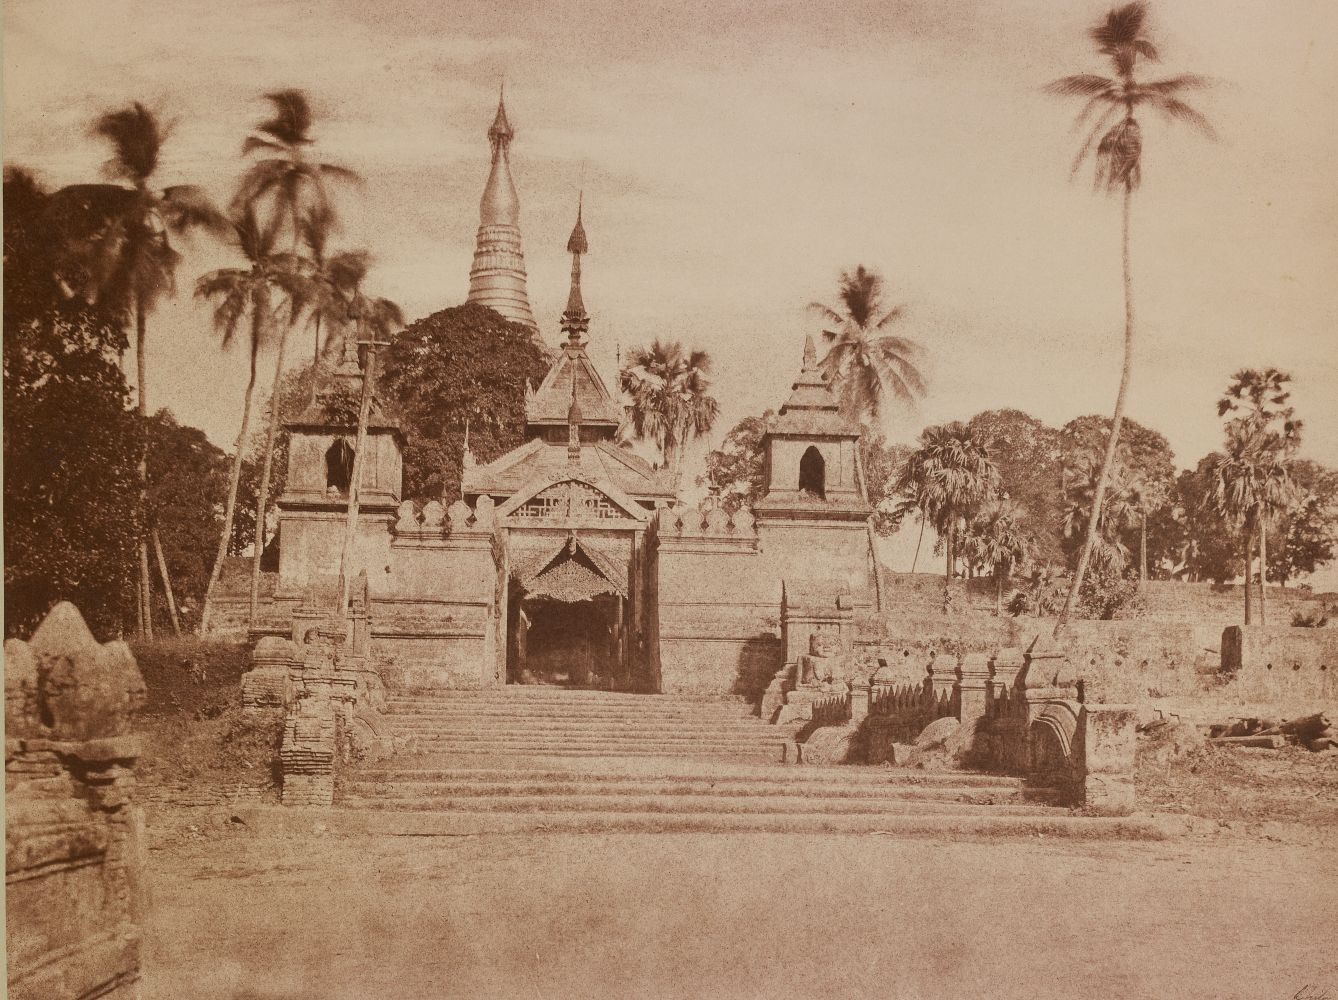 "Captain Linnaeus TRIPE (English, 1822-1902) ""No. 108. Rangoon. South Entrance of Shwe Dagon Pagoda."" Burma, 1855 Albumenized salt print from a waxed paper negative 25.9 x 34.3 cm mounted on 45.6 x 58.4 cm paper Signed ""L. Tripe"" in ink. Photographer's blindstamp and printed label with plate number, title and ""The road which leads to this, is, on festival days, crowded with Burmese men, women, and children, in gay silks and muslins carrying offerings to the Pagoda."" on mount."